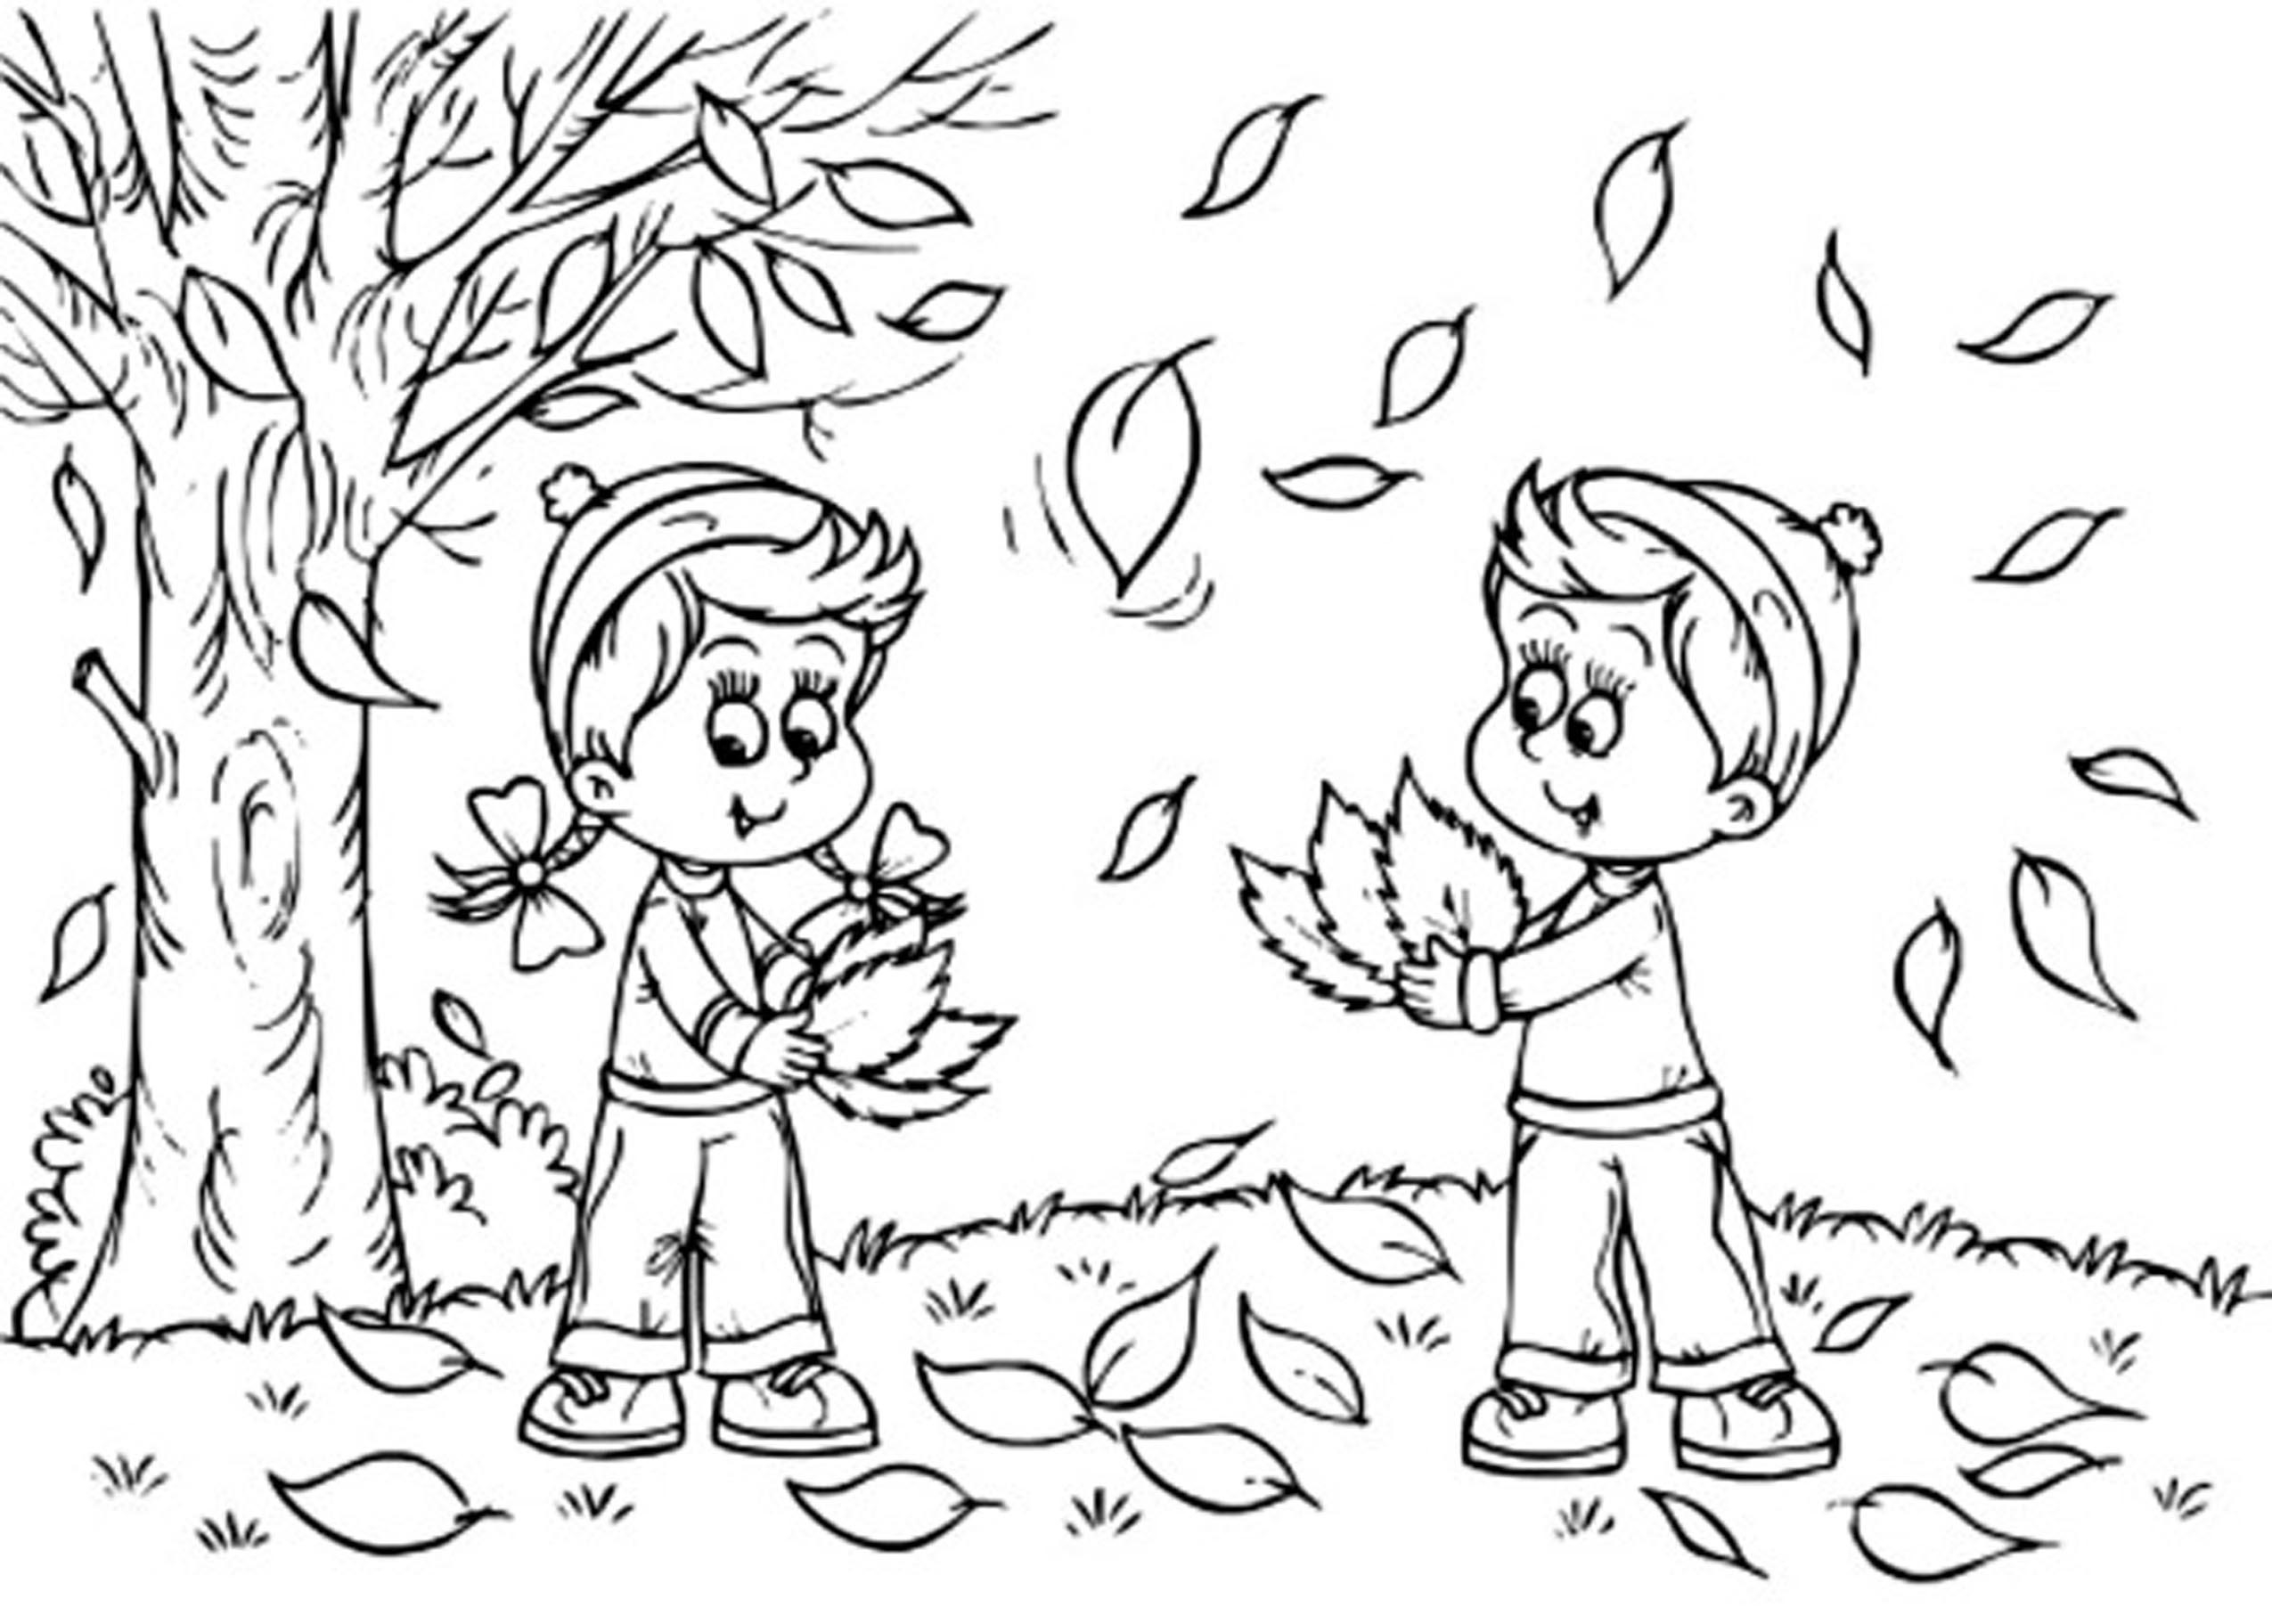 Printable Coloring Pages For Kids Printable Coloring Pages For Kids With Worksheets Kindergarten